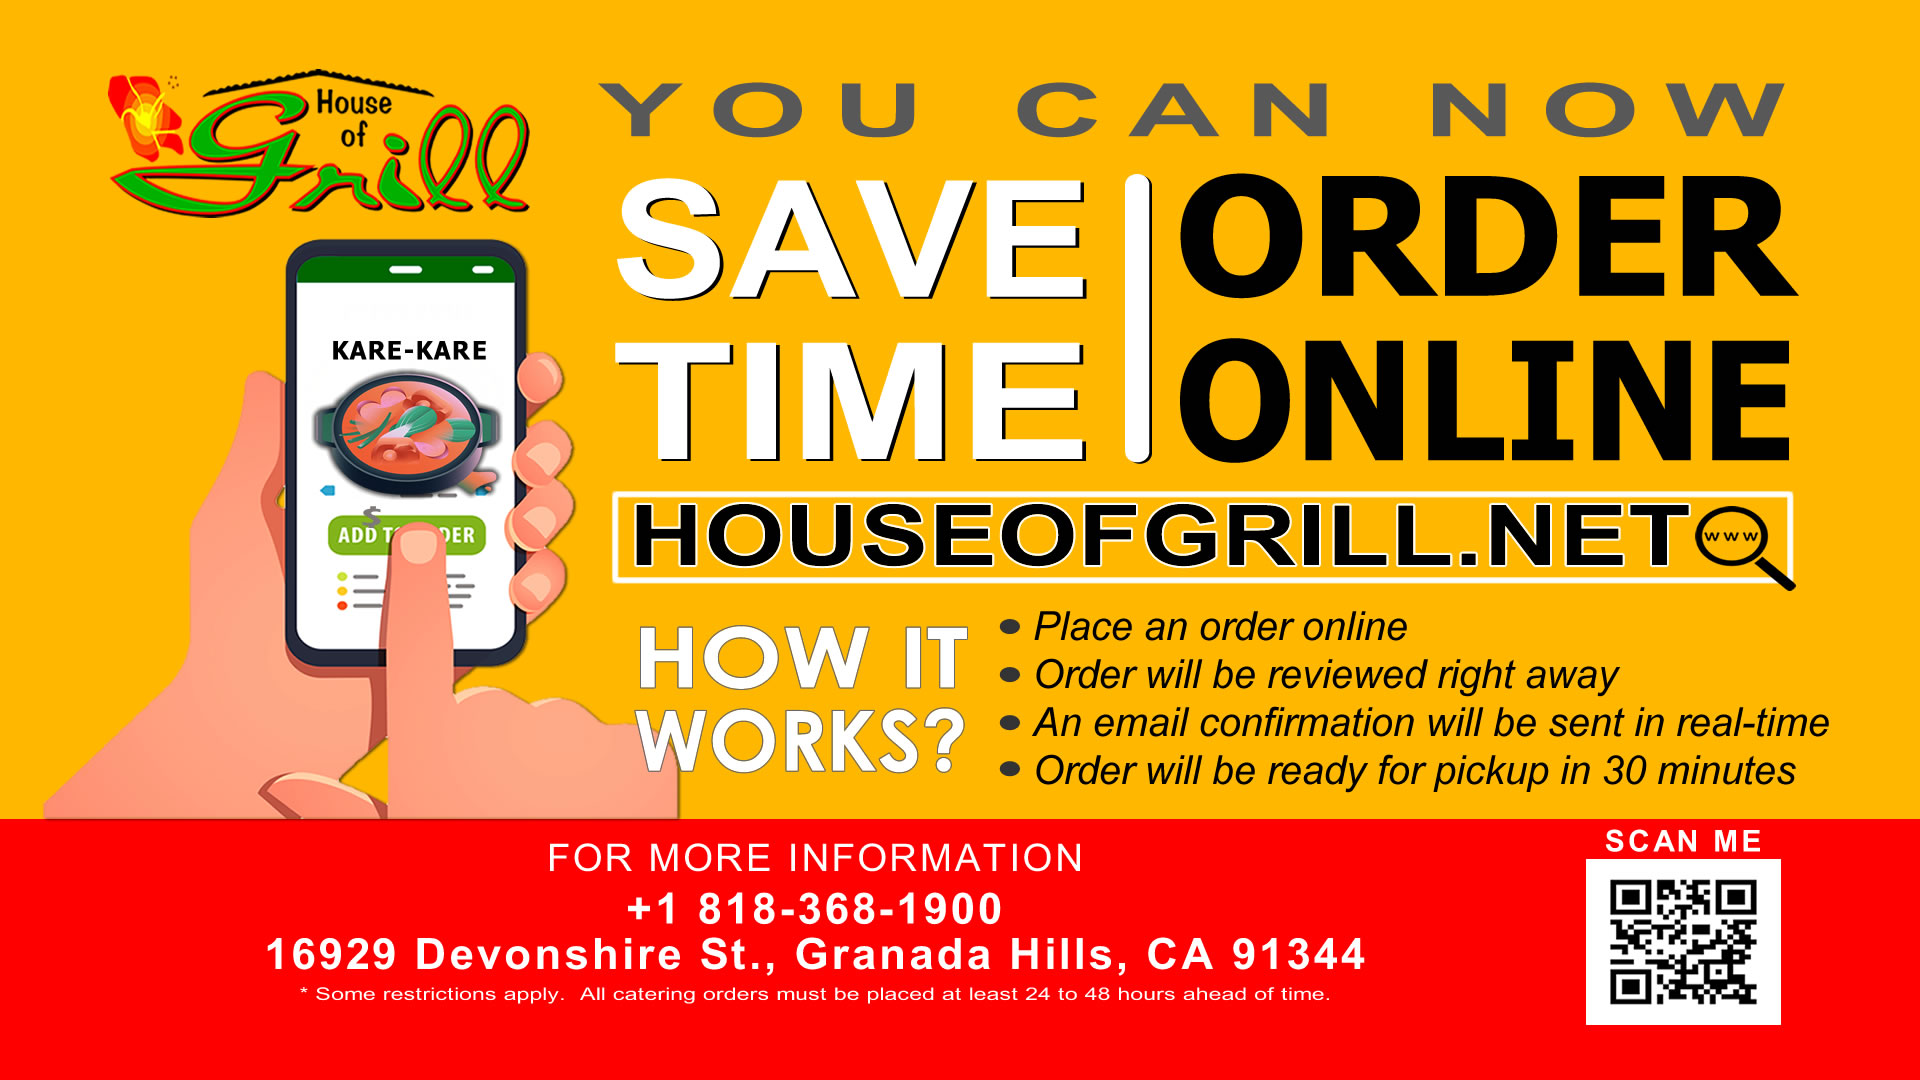 House of Grill Order Online